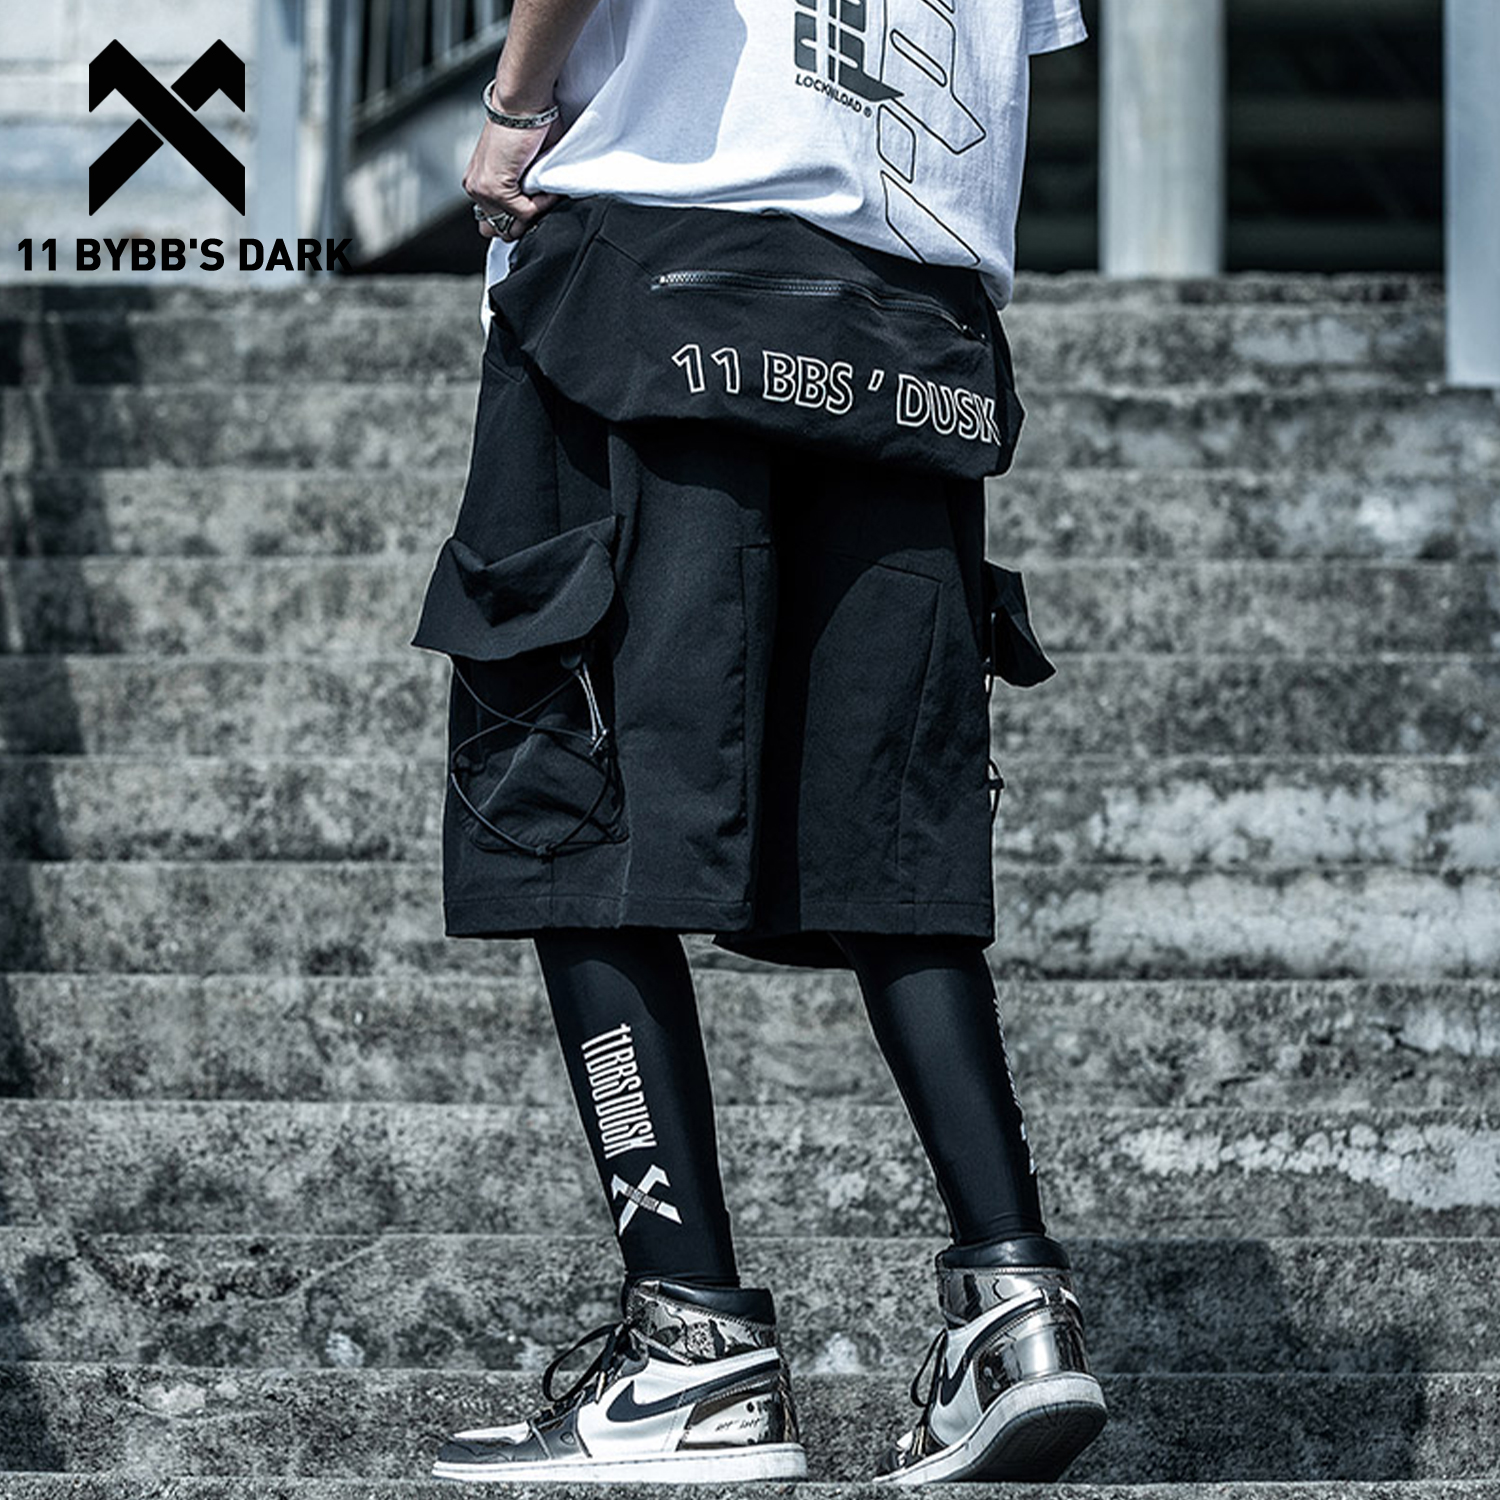 11 BYBB'S DARK Reflective Pockets Style Cargo Shorts Men 2020 Summer Tactical Knee Length Short Pants Joggers Shorts Streetwear